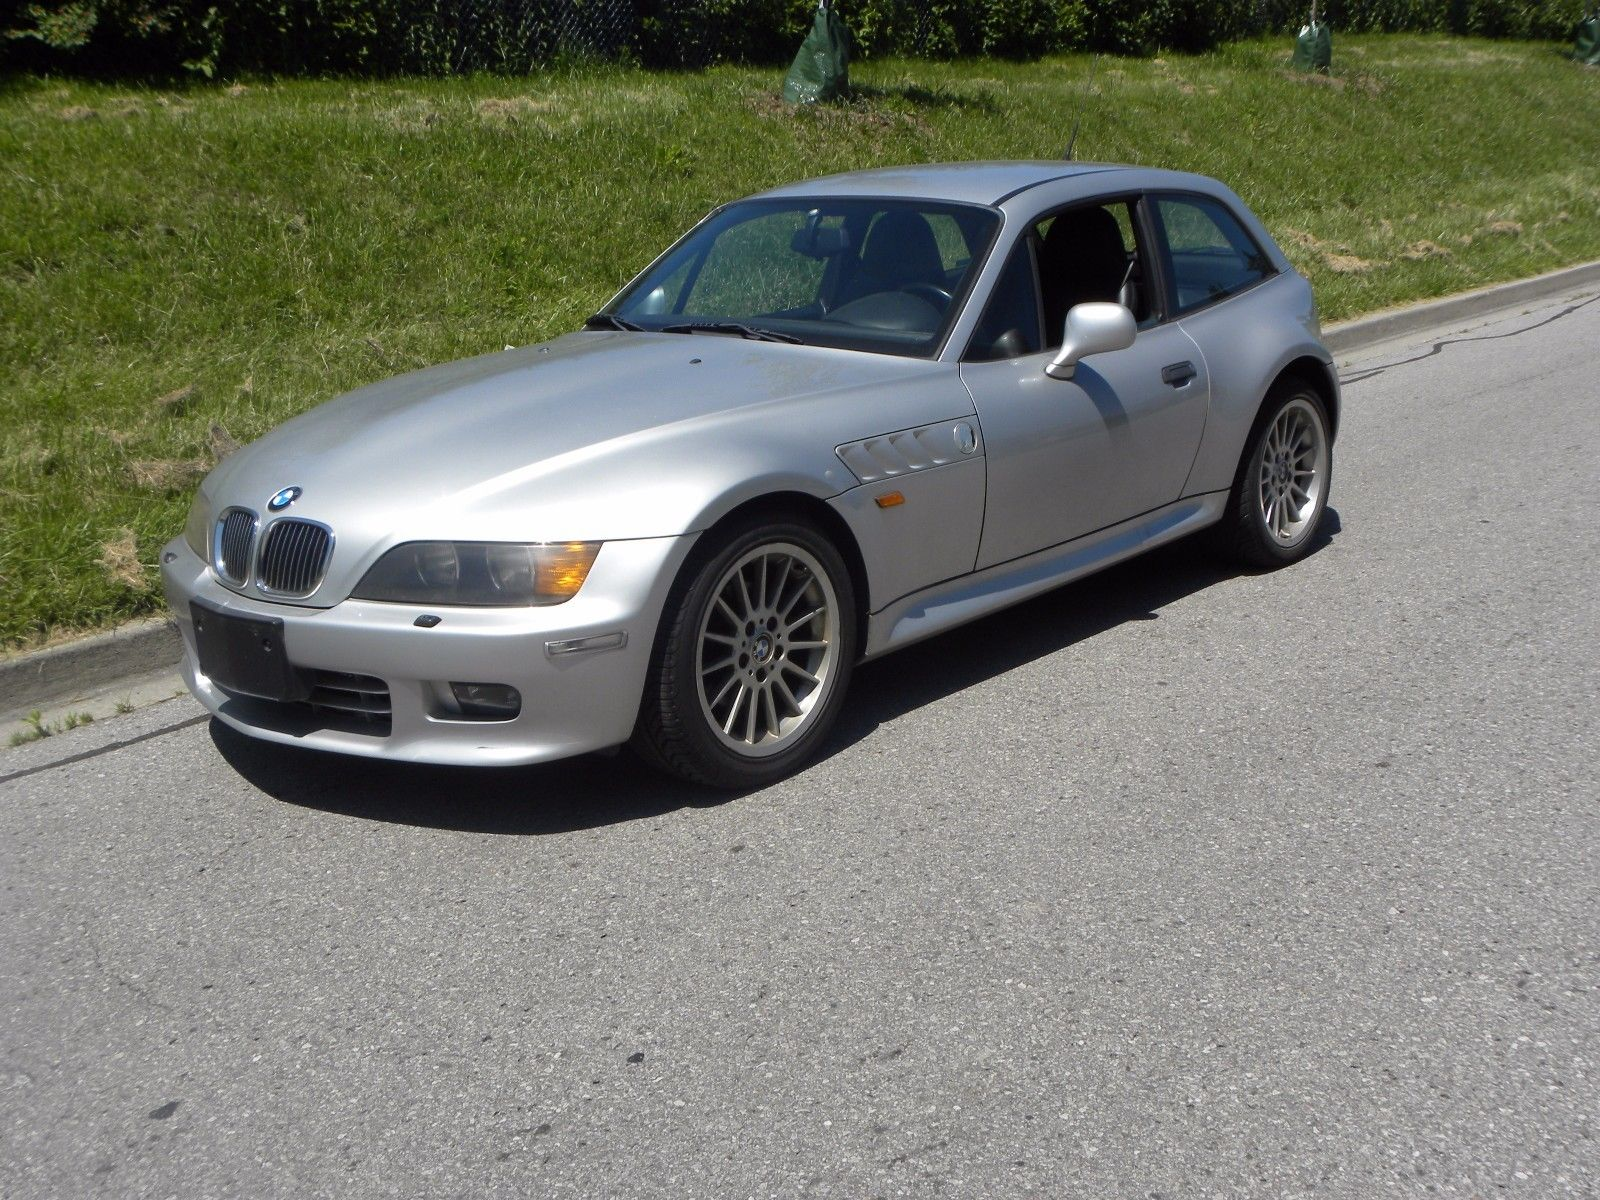 1999 BMW Z3 Coupe in Arctic Silver Metallic over Extended Black